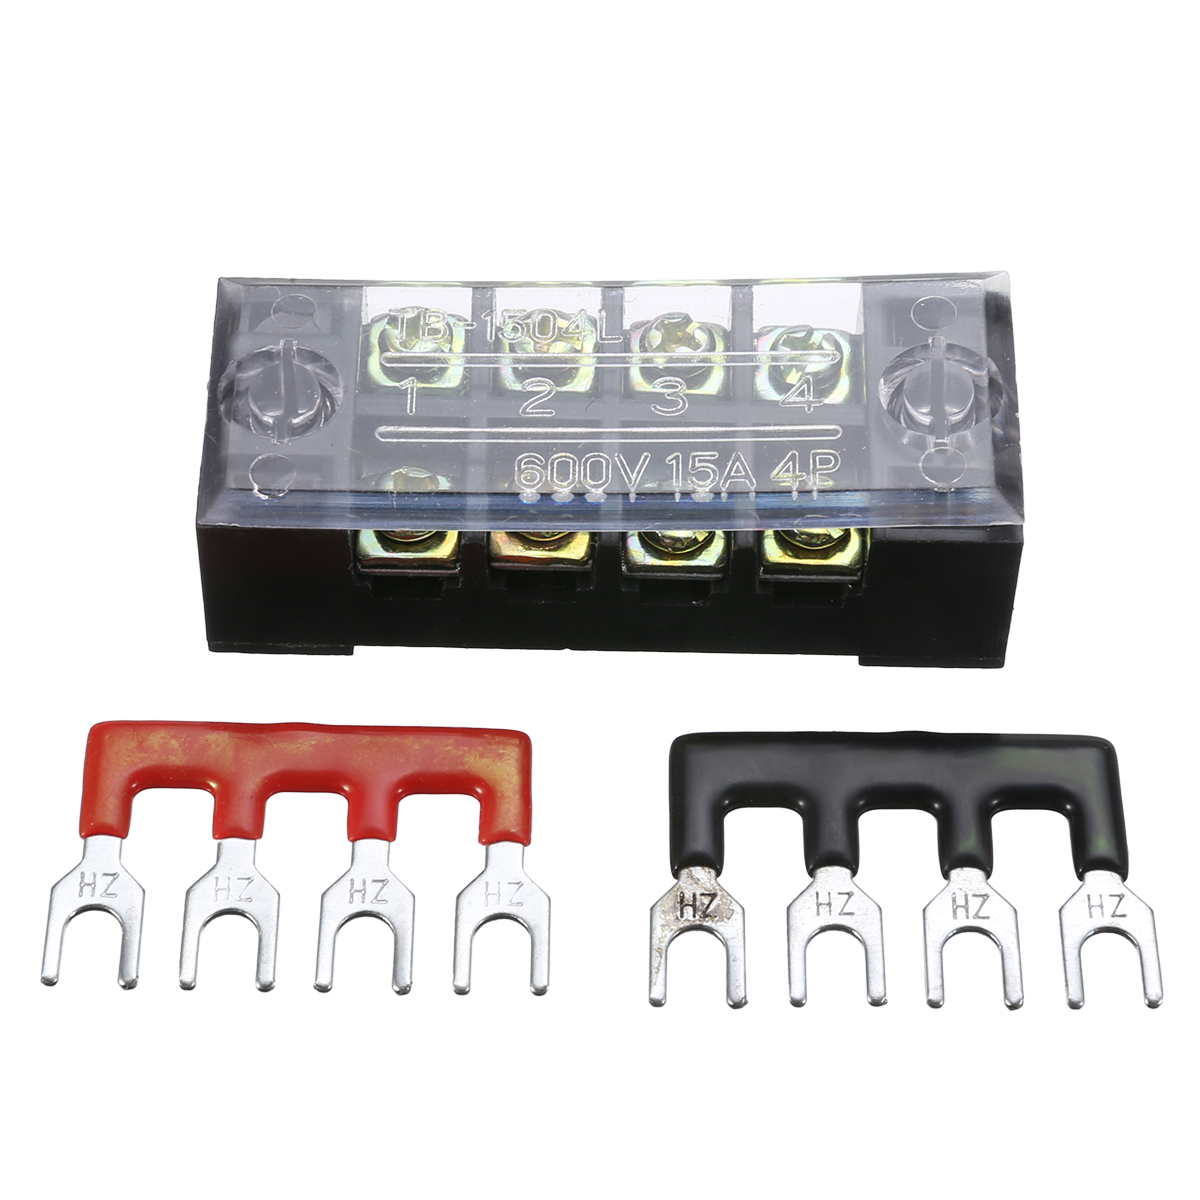 600V 15A 4P Double Row Wire Barrier Terminal Block Dual Row Terminal Block with 2 Connector Strips Power Distribution Terminal image